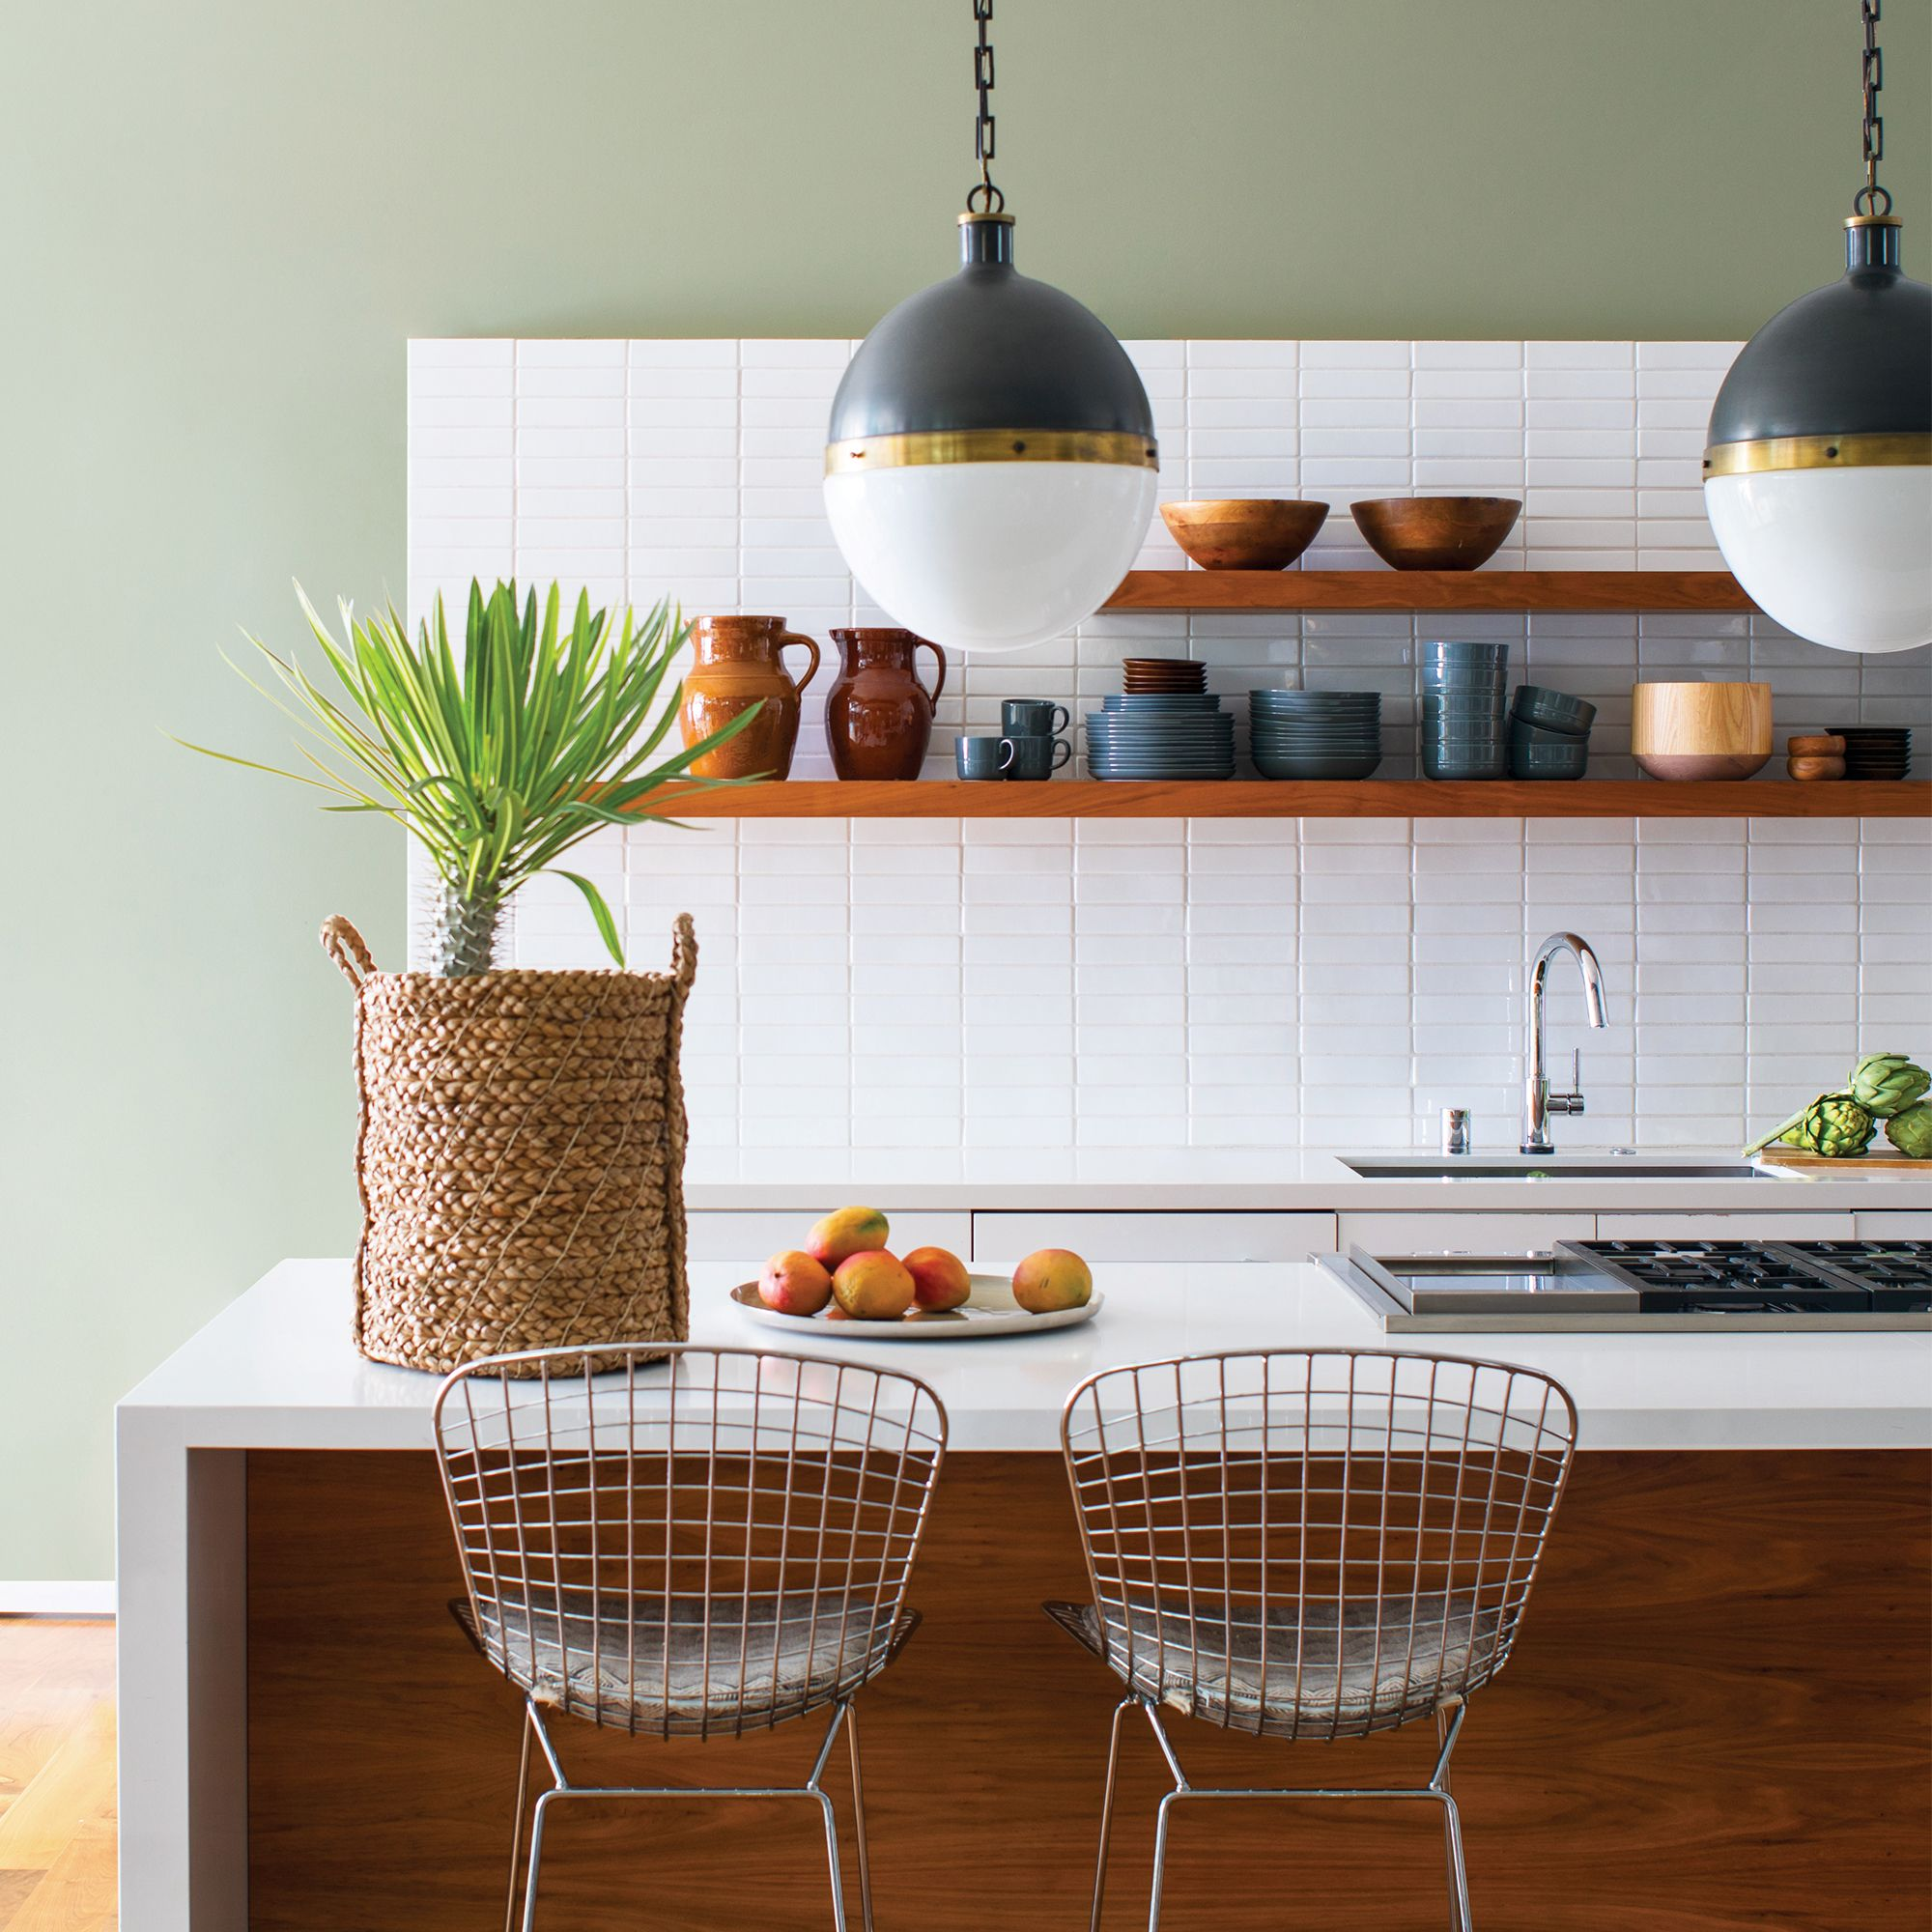 Green Kitchen with Hanging Lights